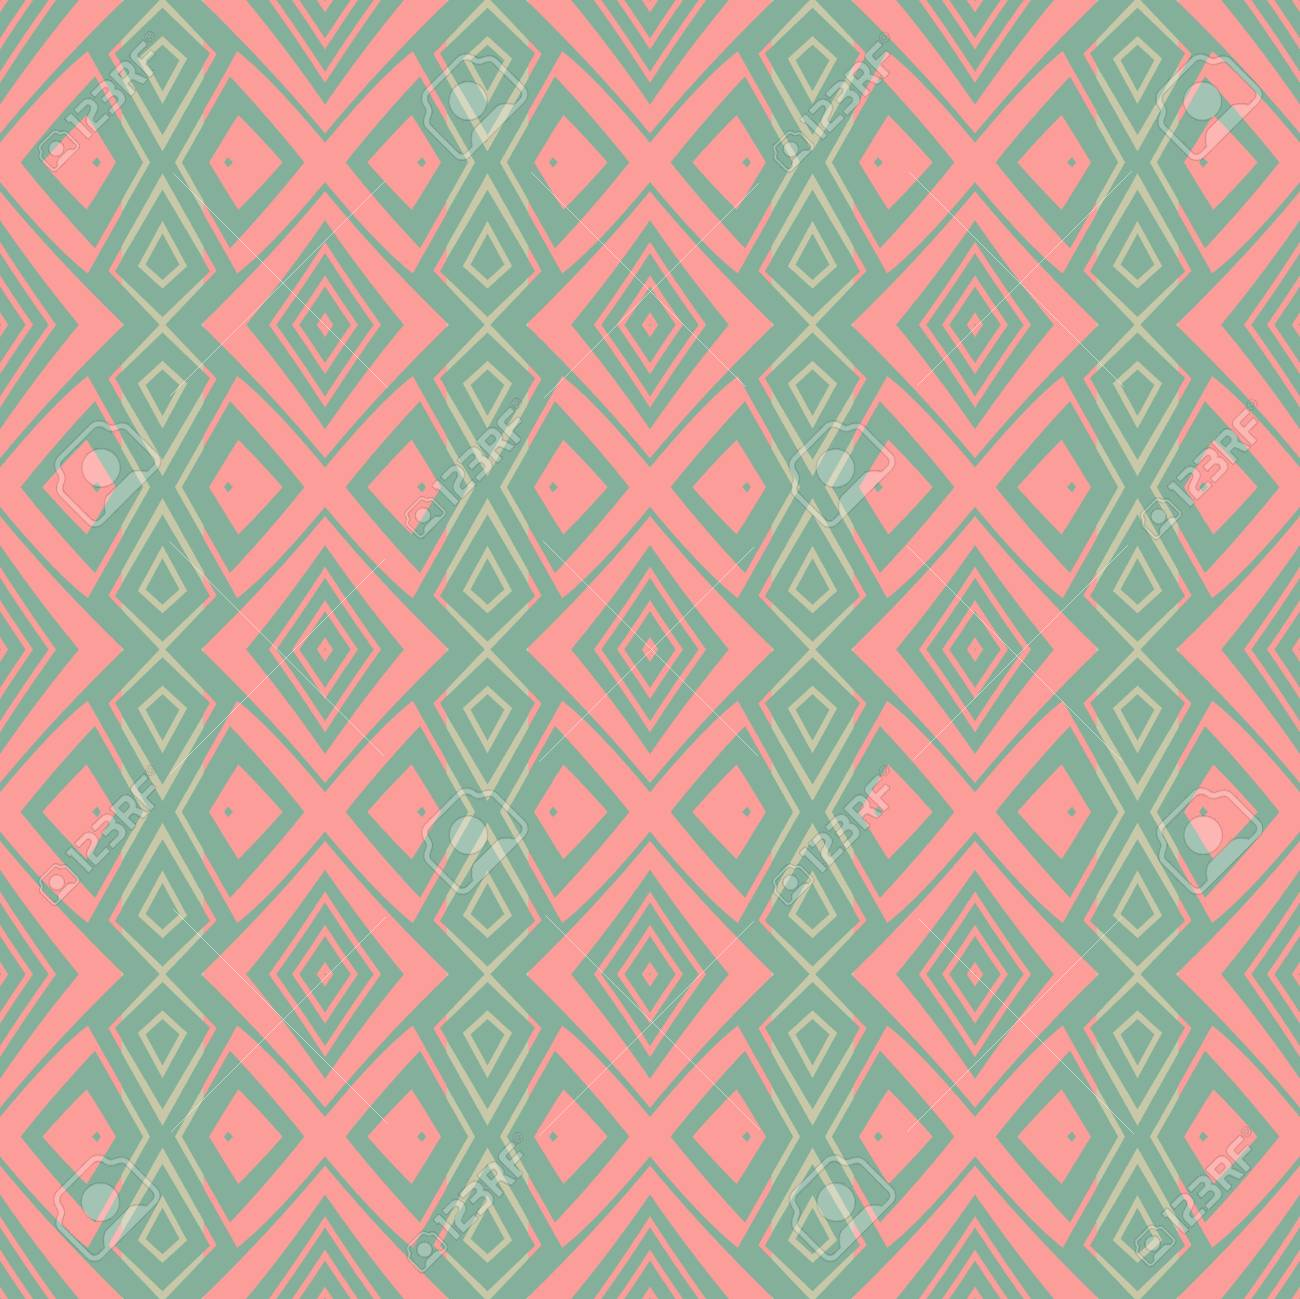 abstract vintage geometric wallpaper pattern seamless background Stock Vector - 14872958